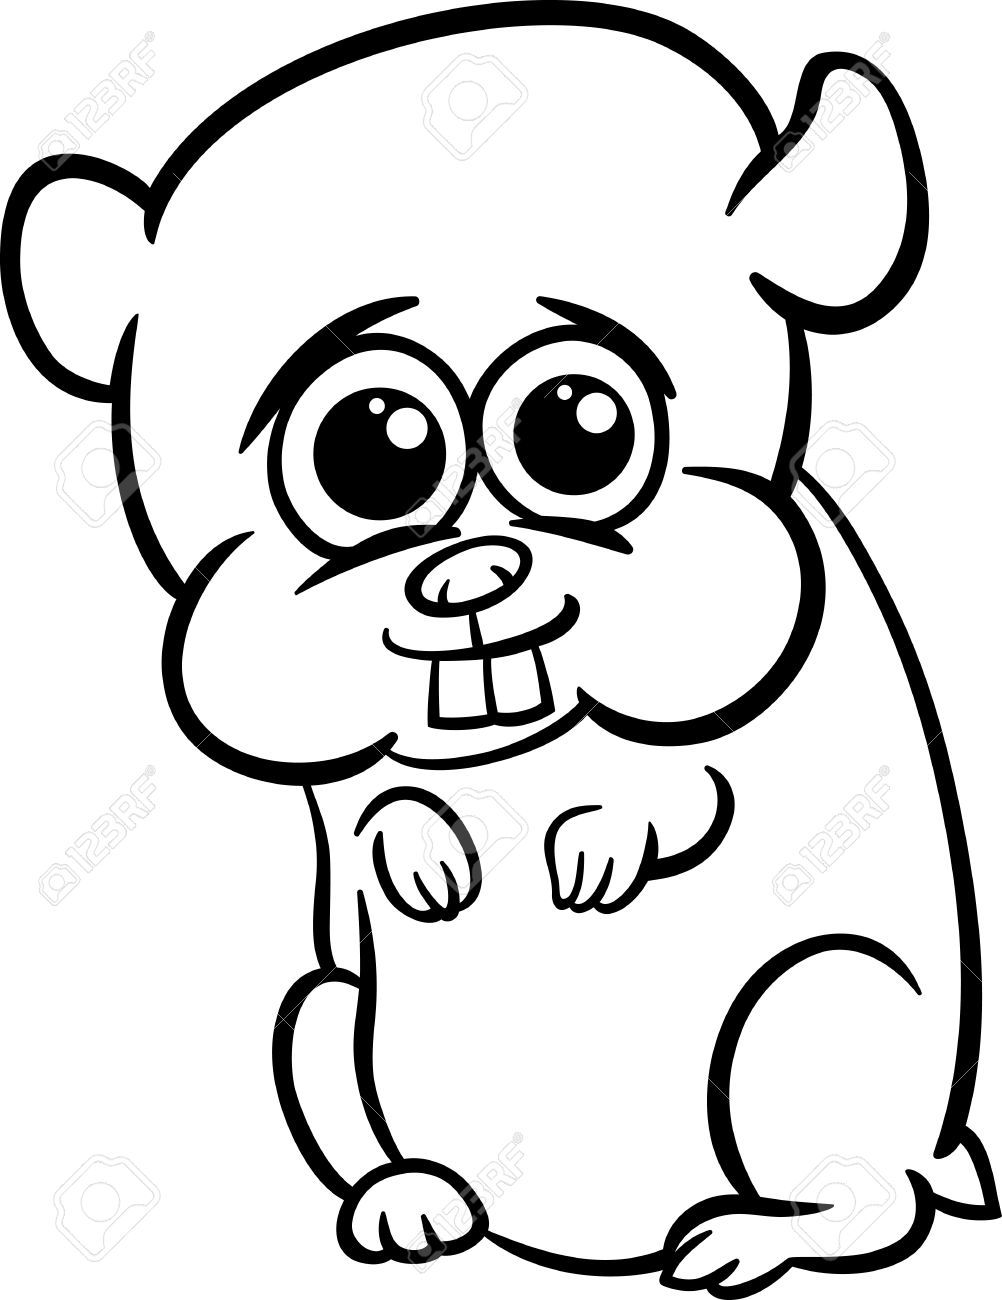 Outstanding Baby Hamster Coloring Pages Ensign - Coloring Paper ...